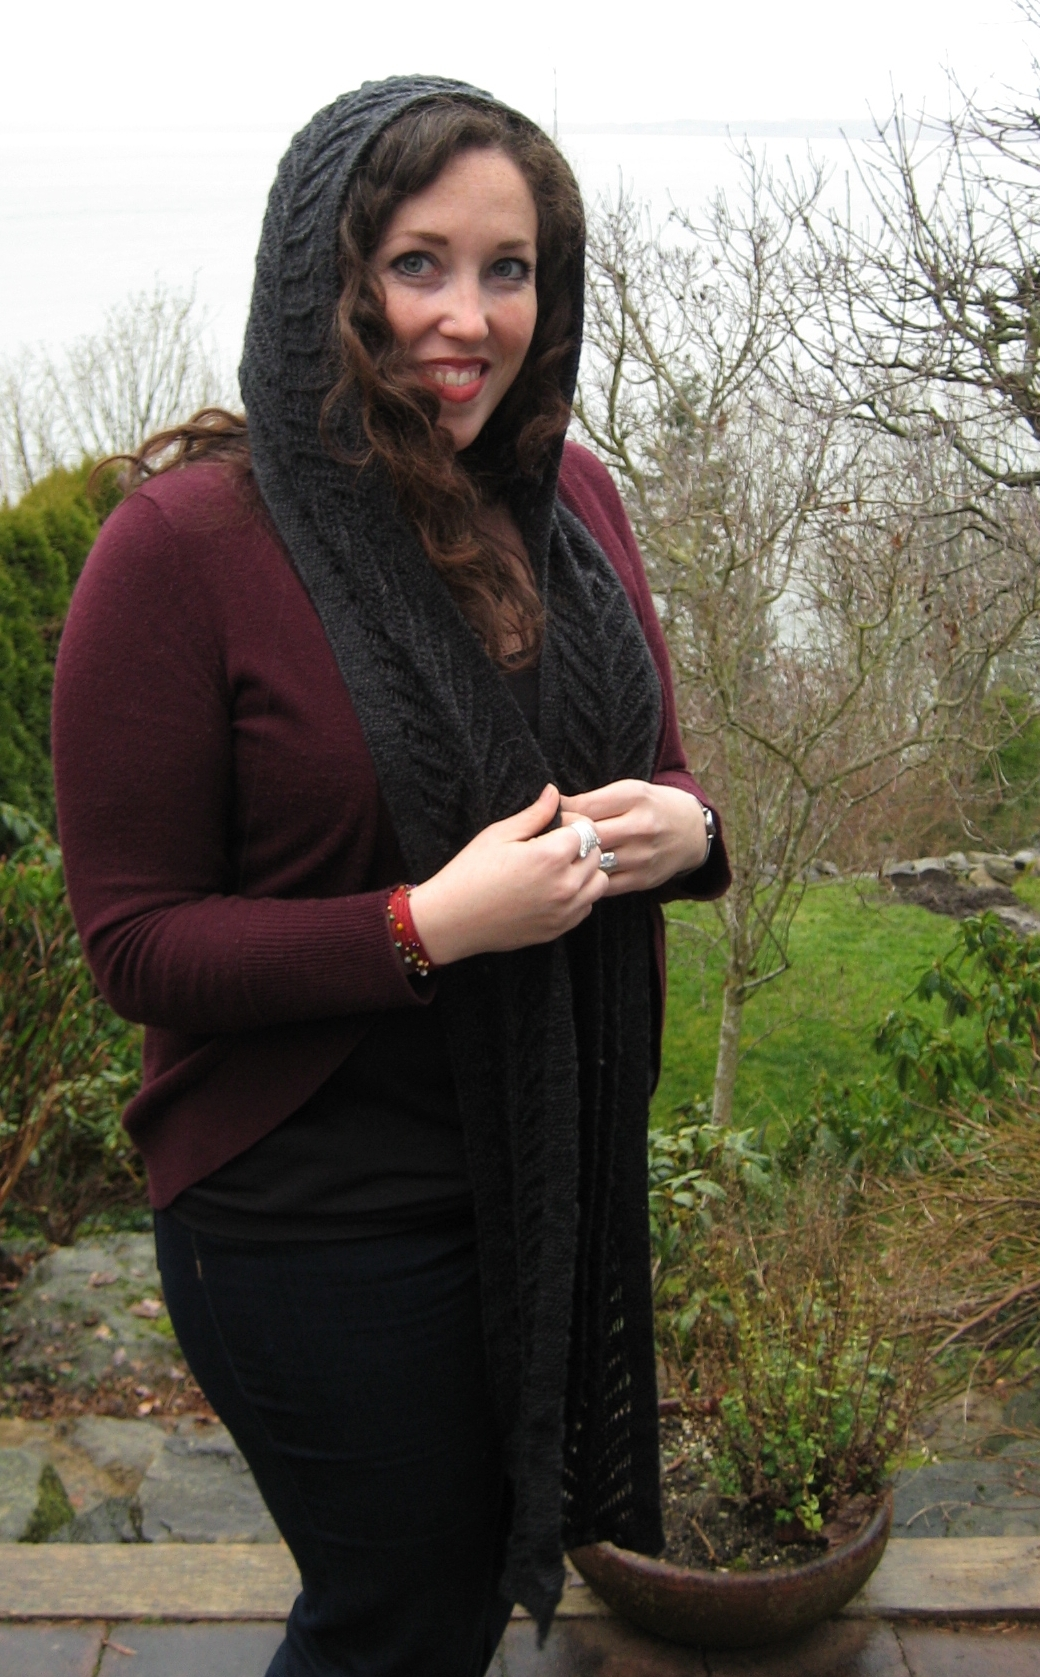 Knitting Pattern: Aglaope - A Lacey, Hooded Scarf